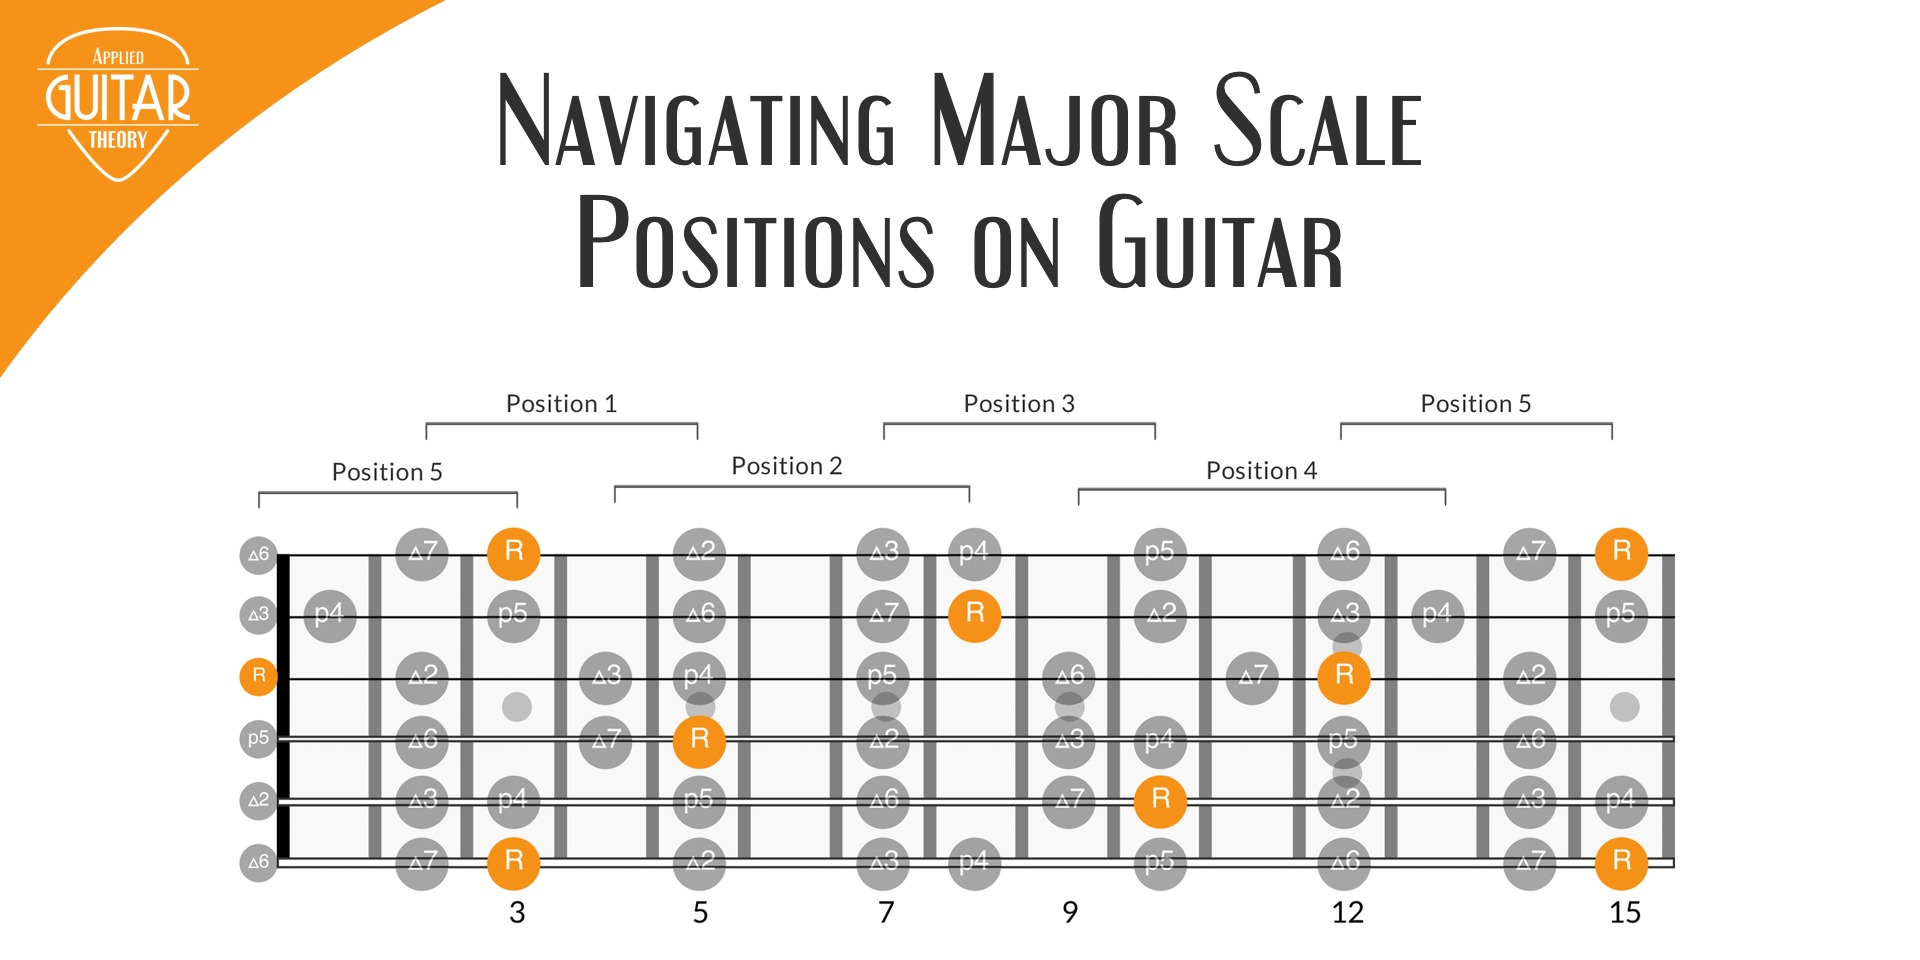 Navigating major scale positions on guitar by root notes